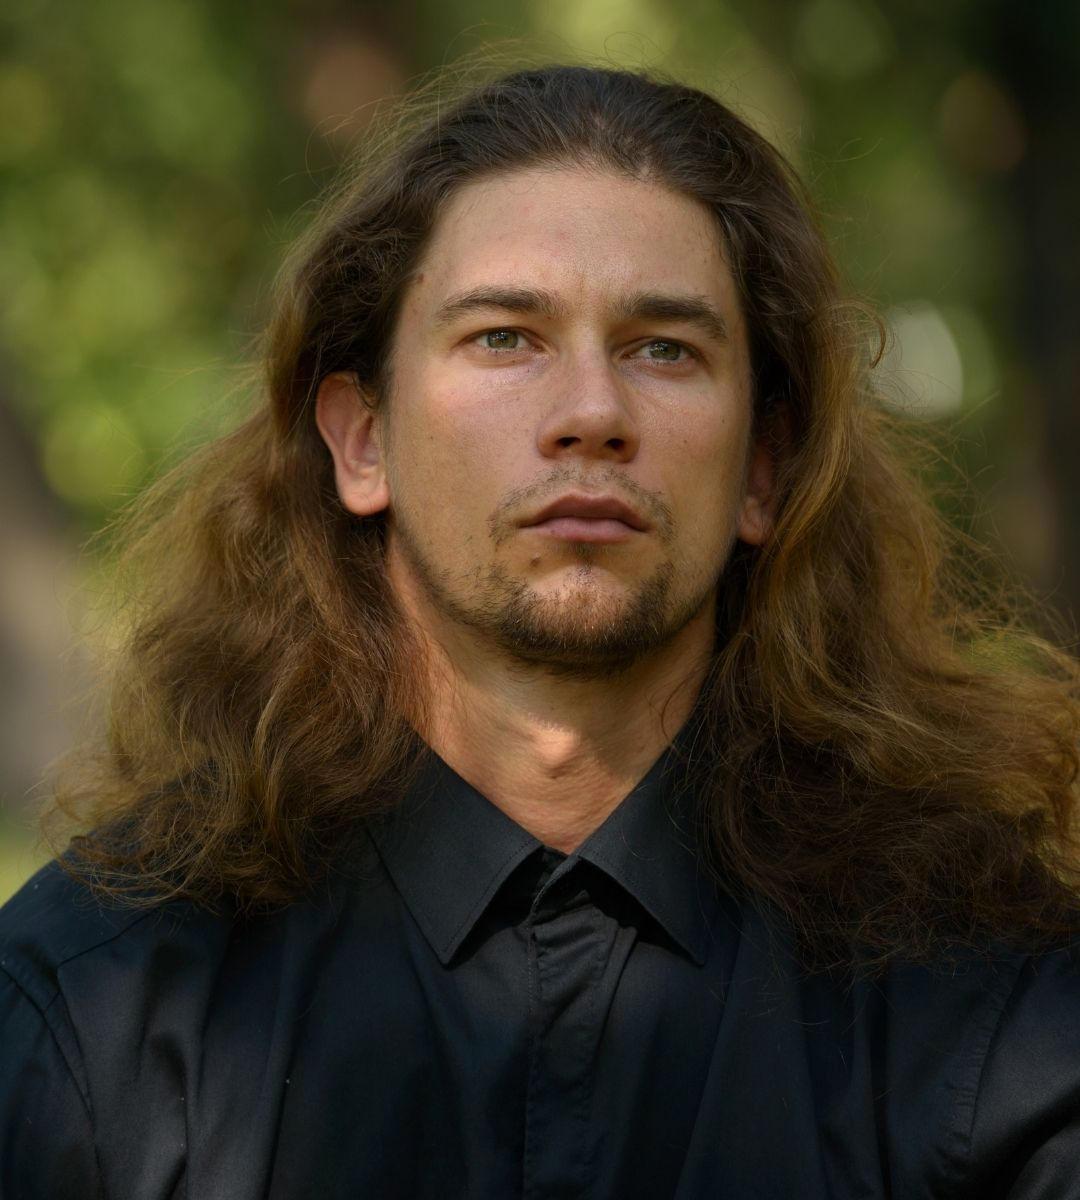 man with wavy hair